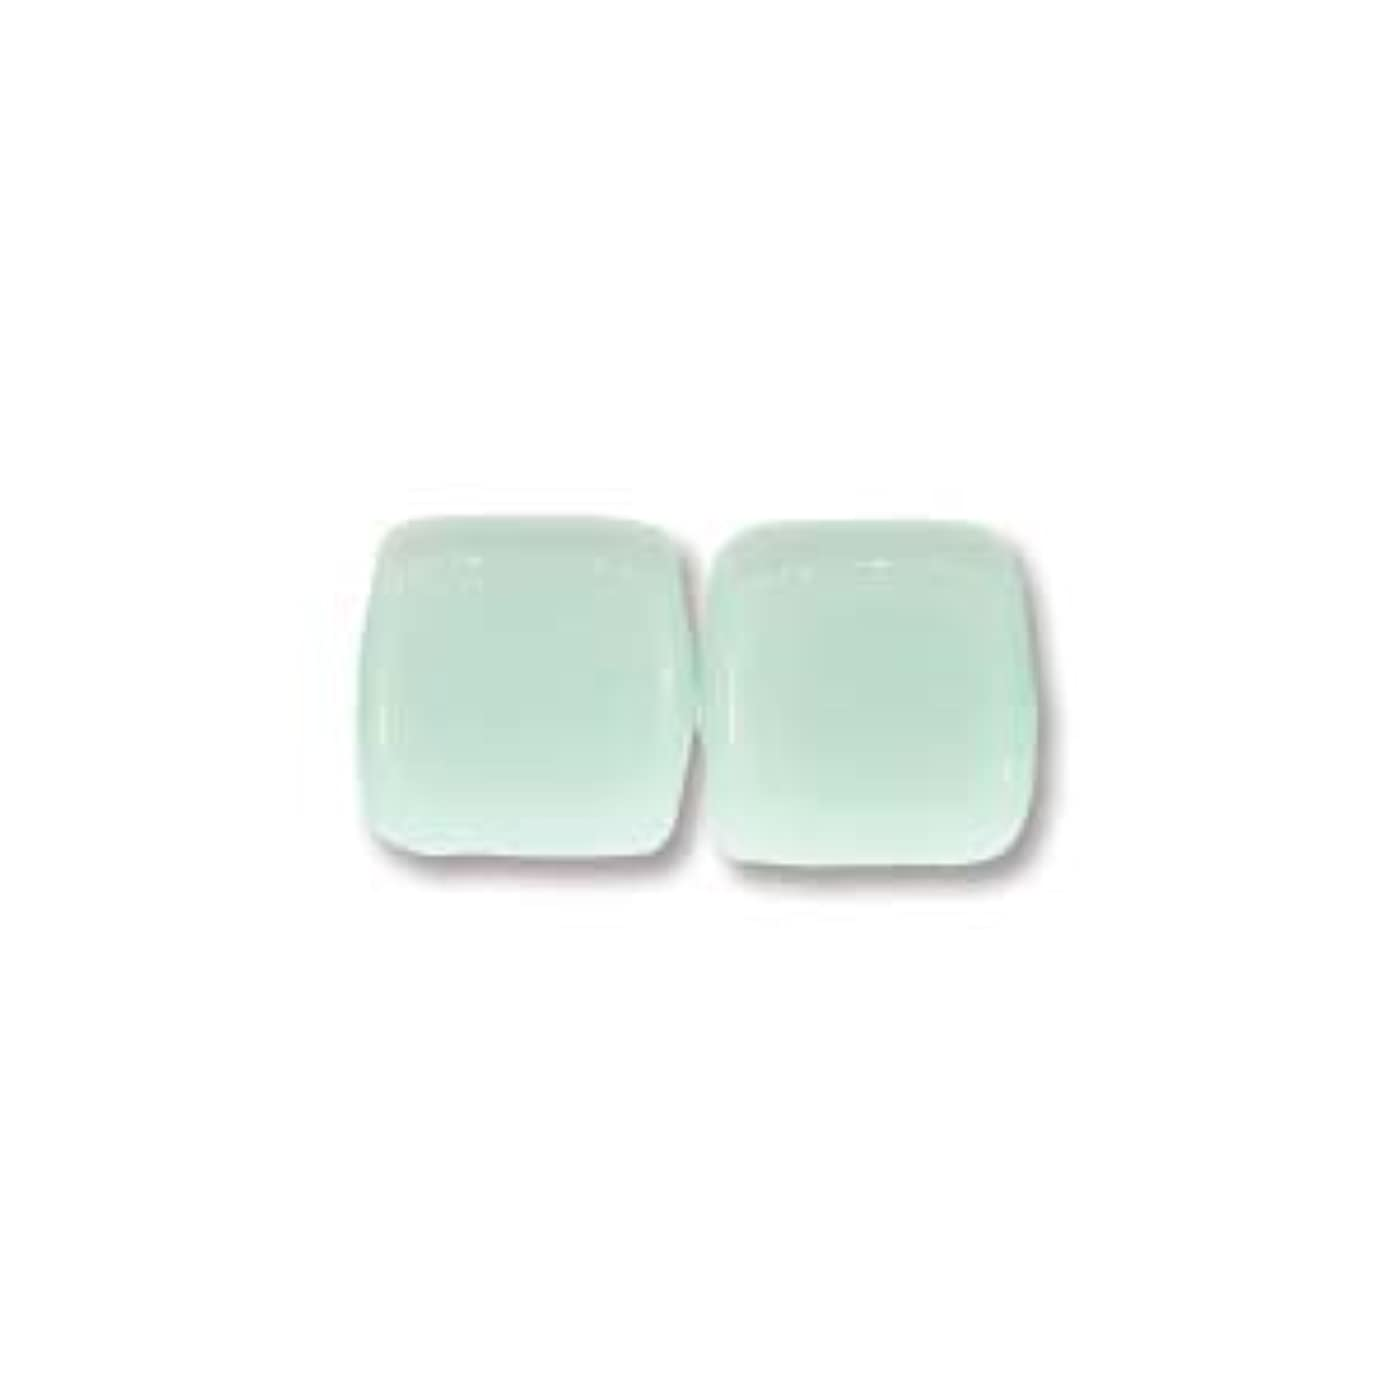 6mm Czech Two Hole Tile Beads - Opaque Pale Turquoise (50)